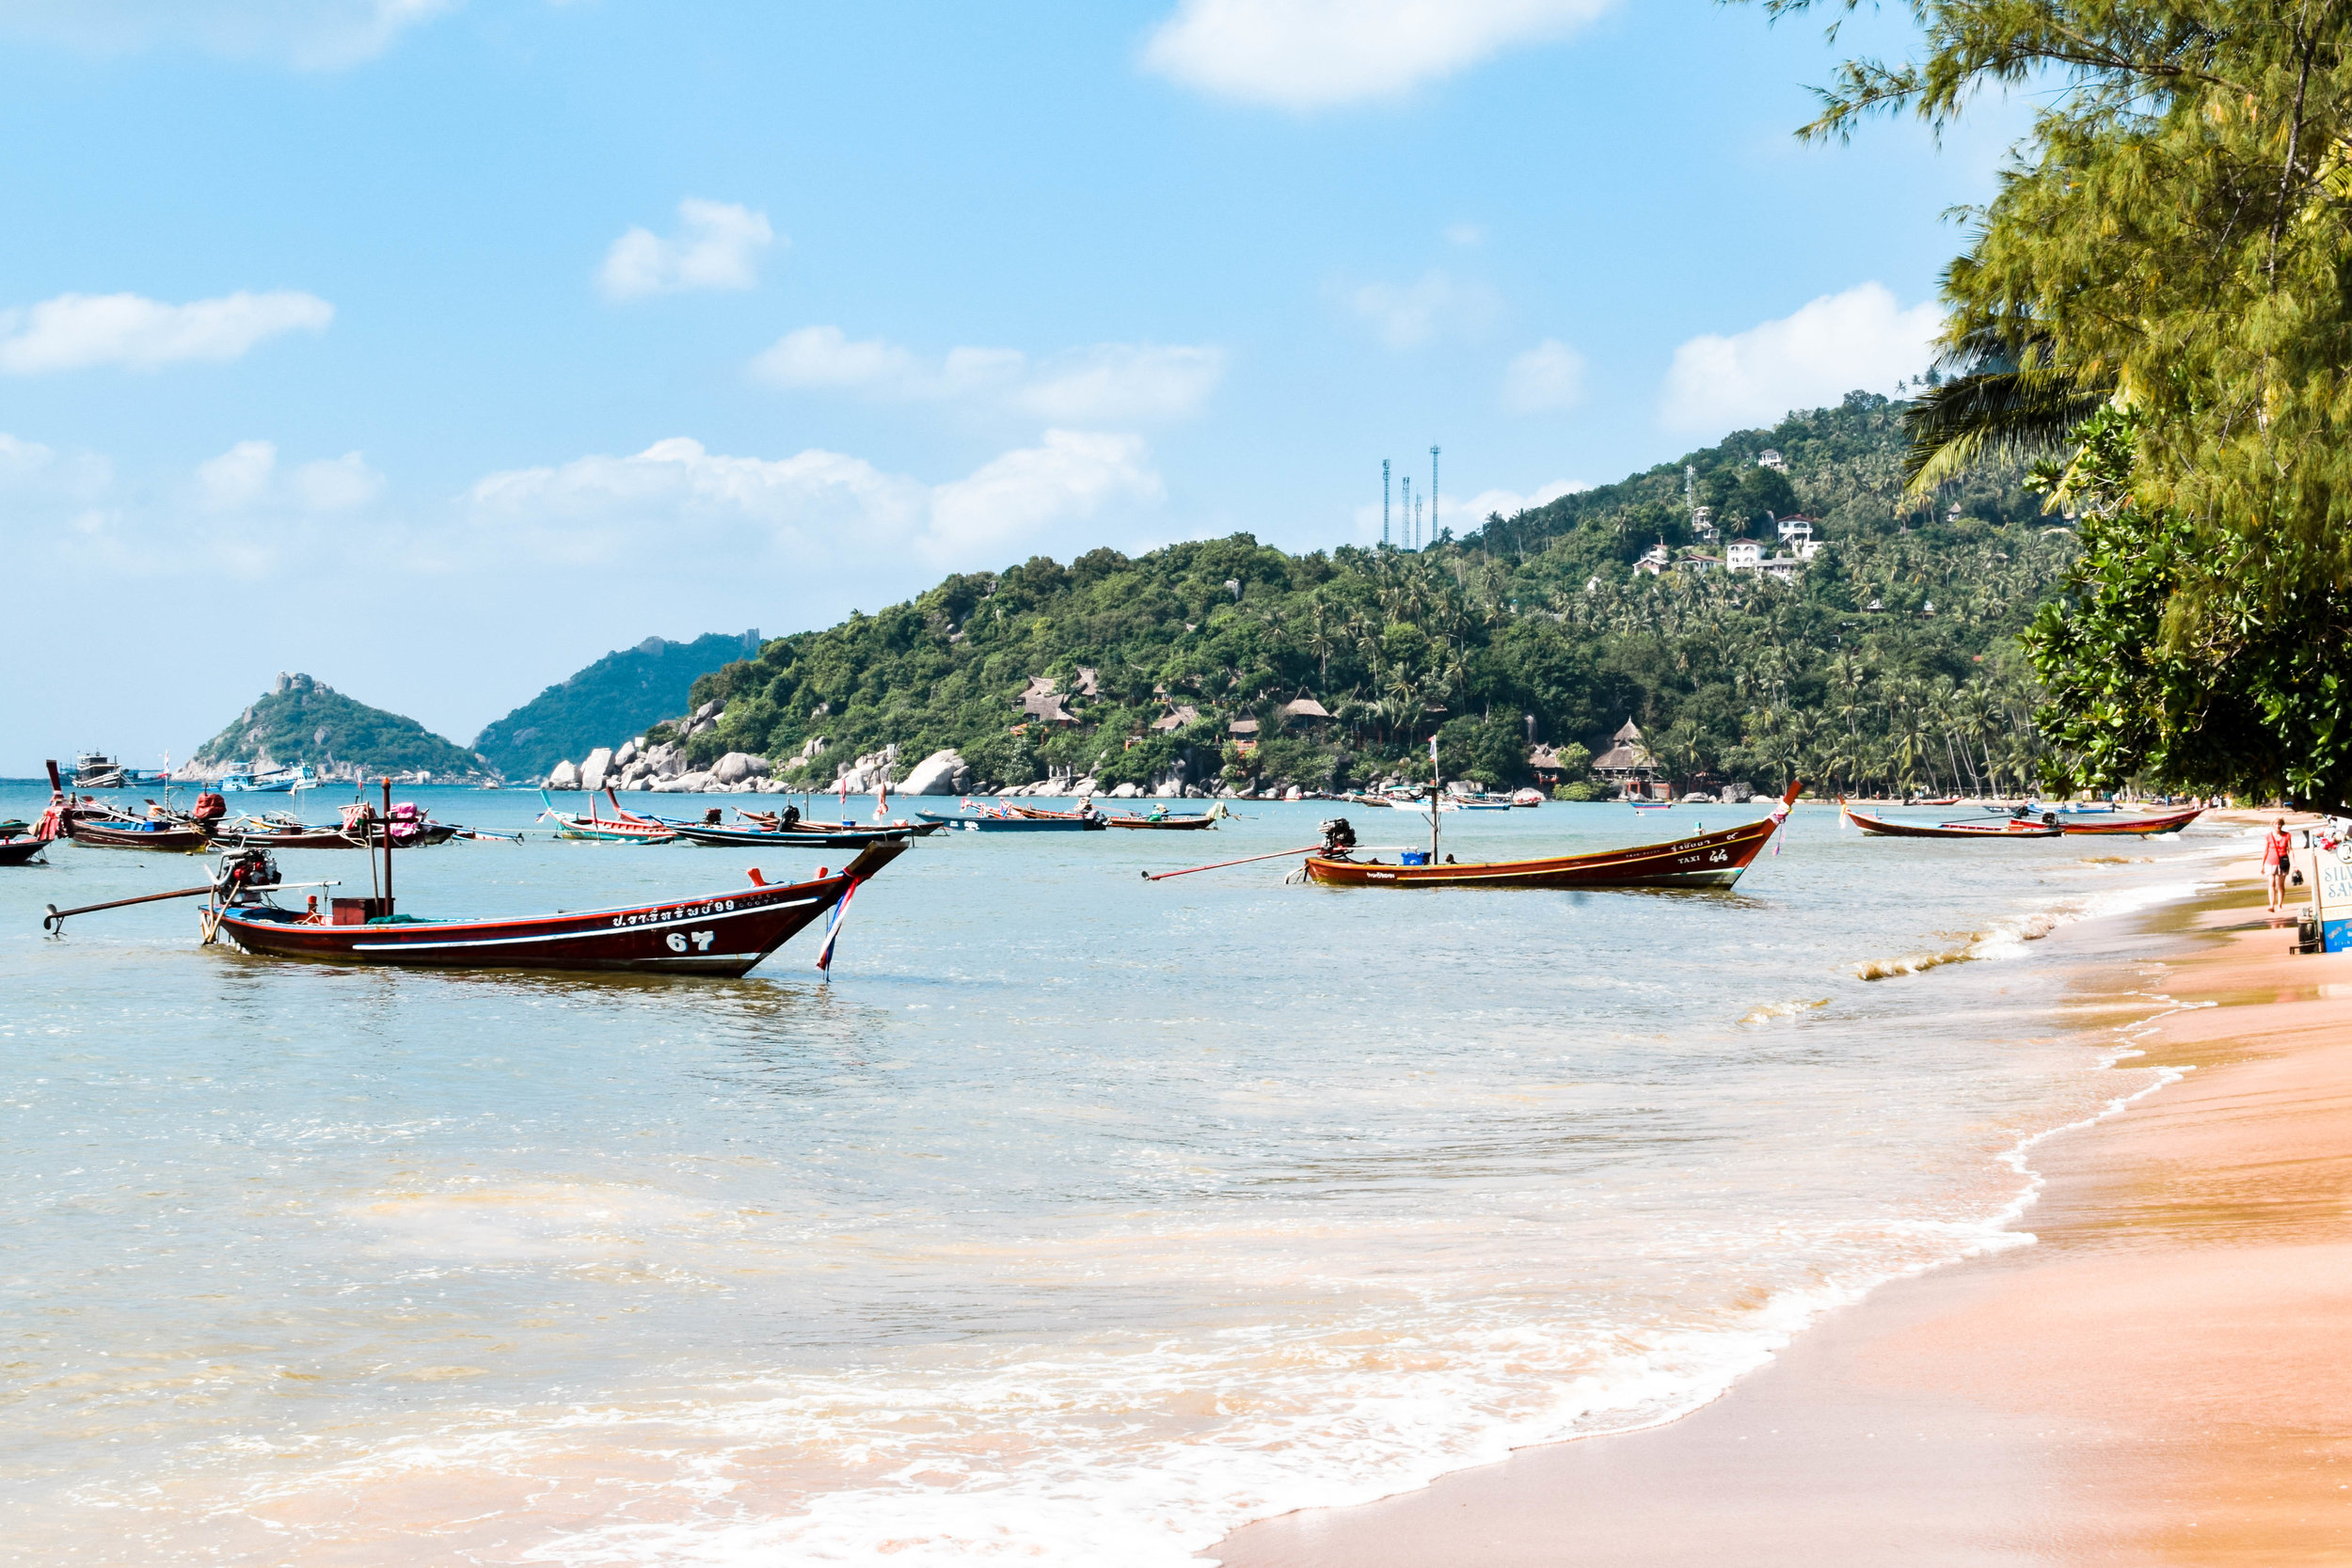 The beaches here are quintessentially Thai.